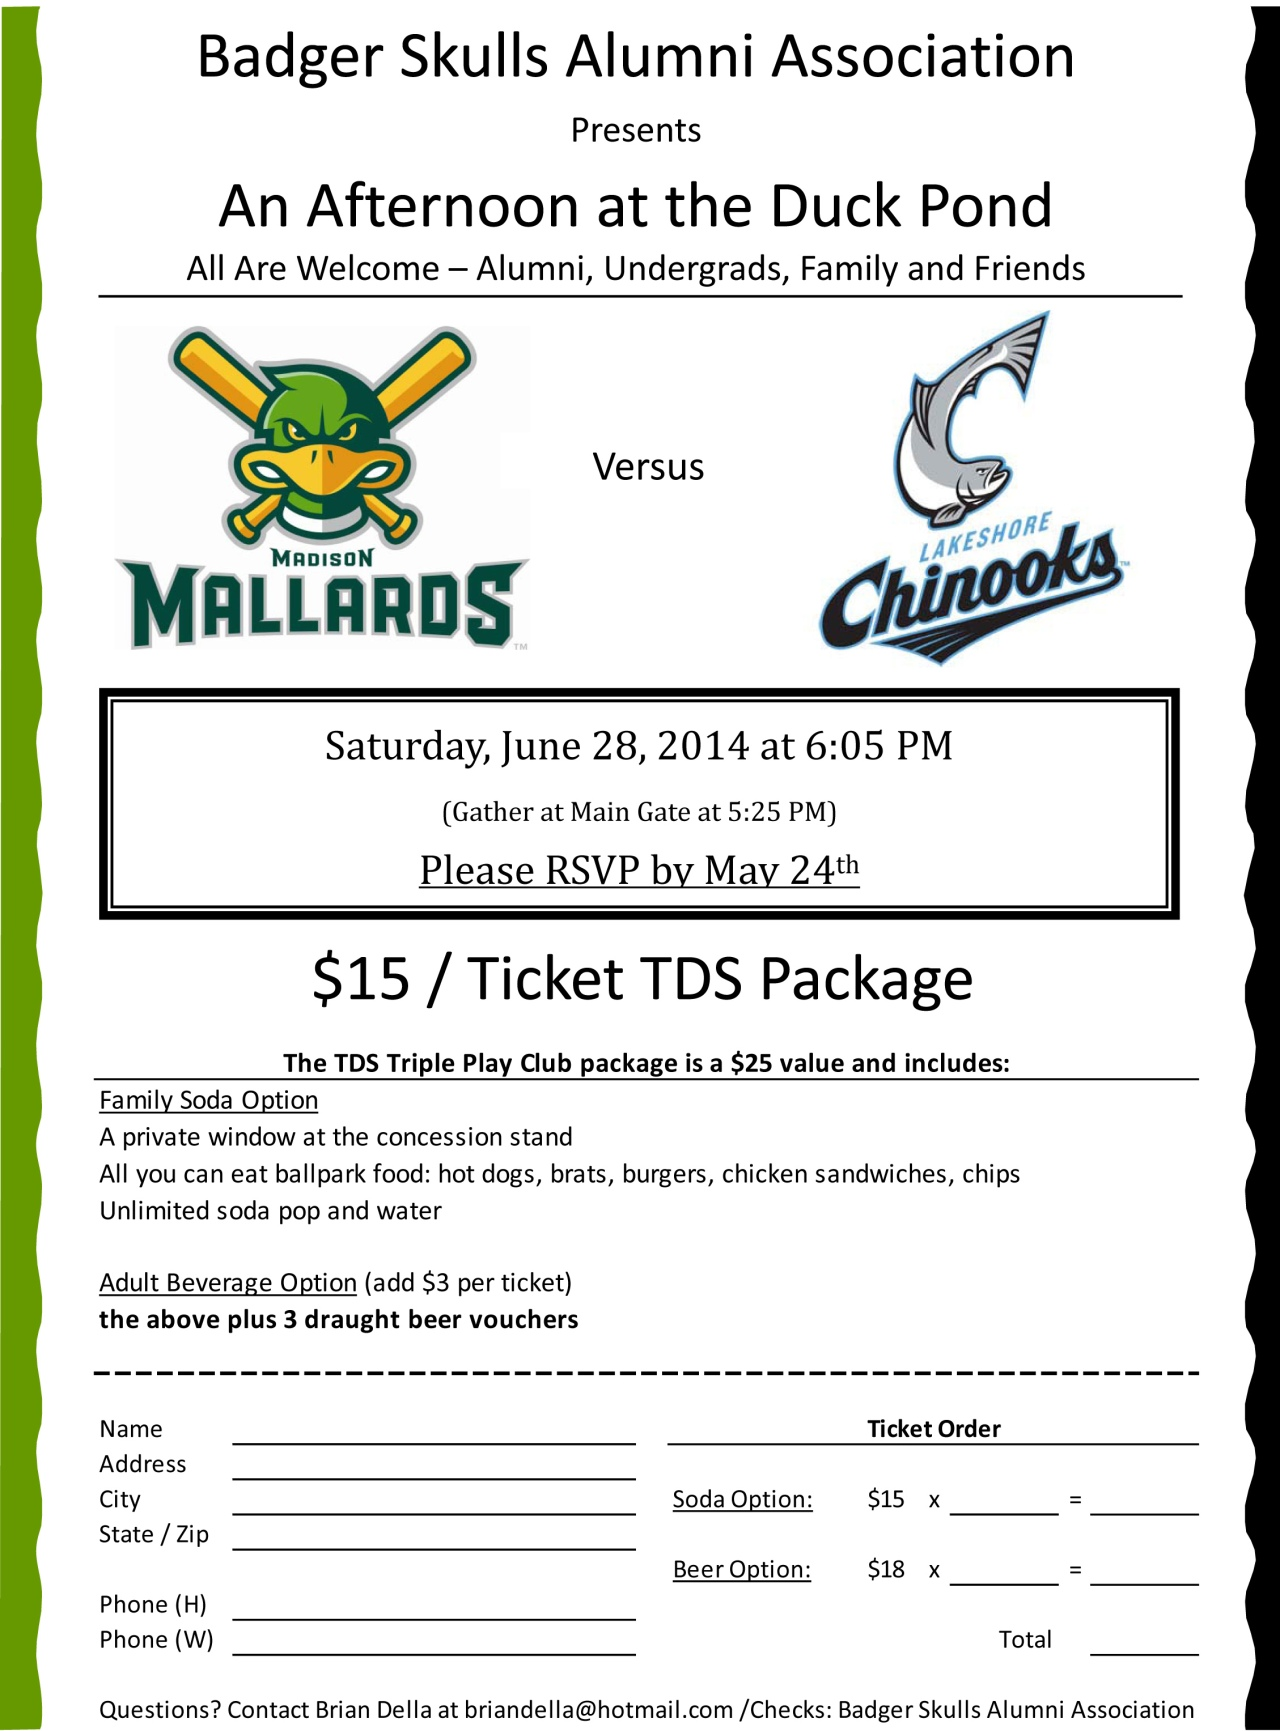 Microsoft Word - Mallards Game_BSAA Flyer_2014_$15.docx